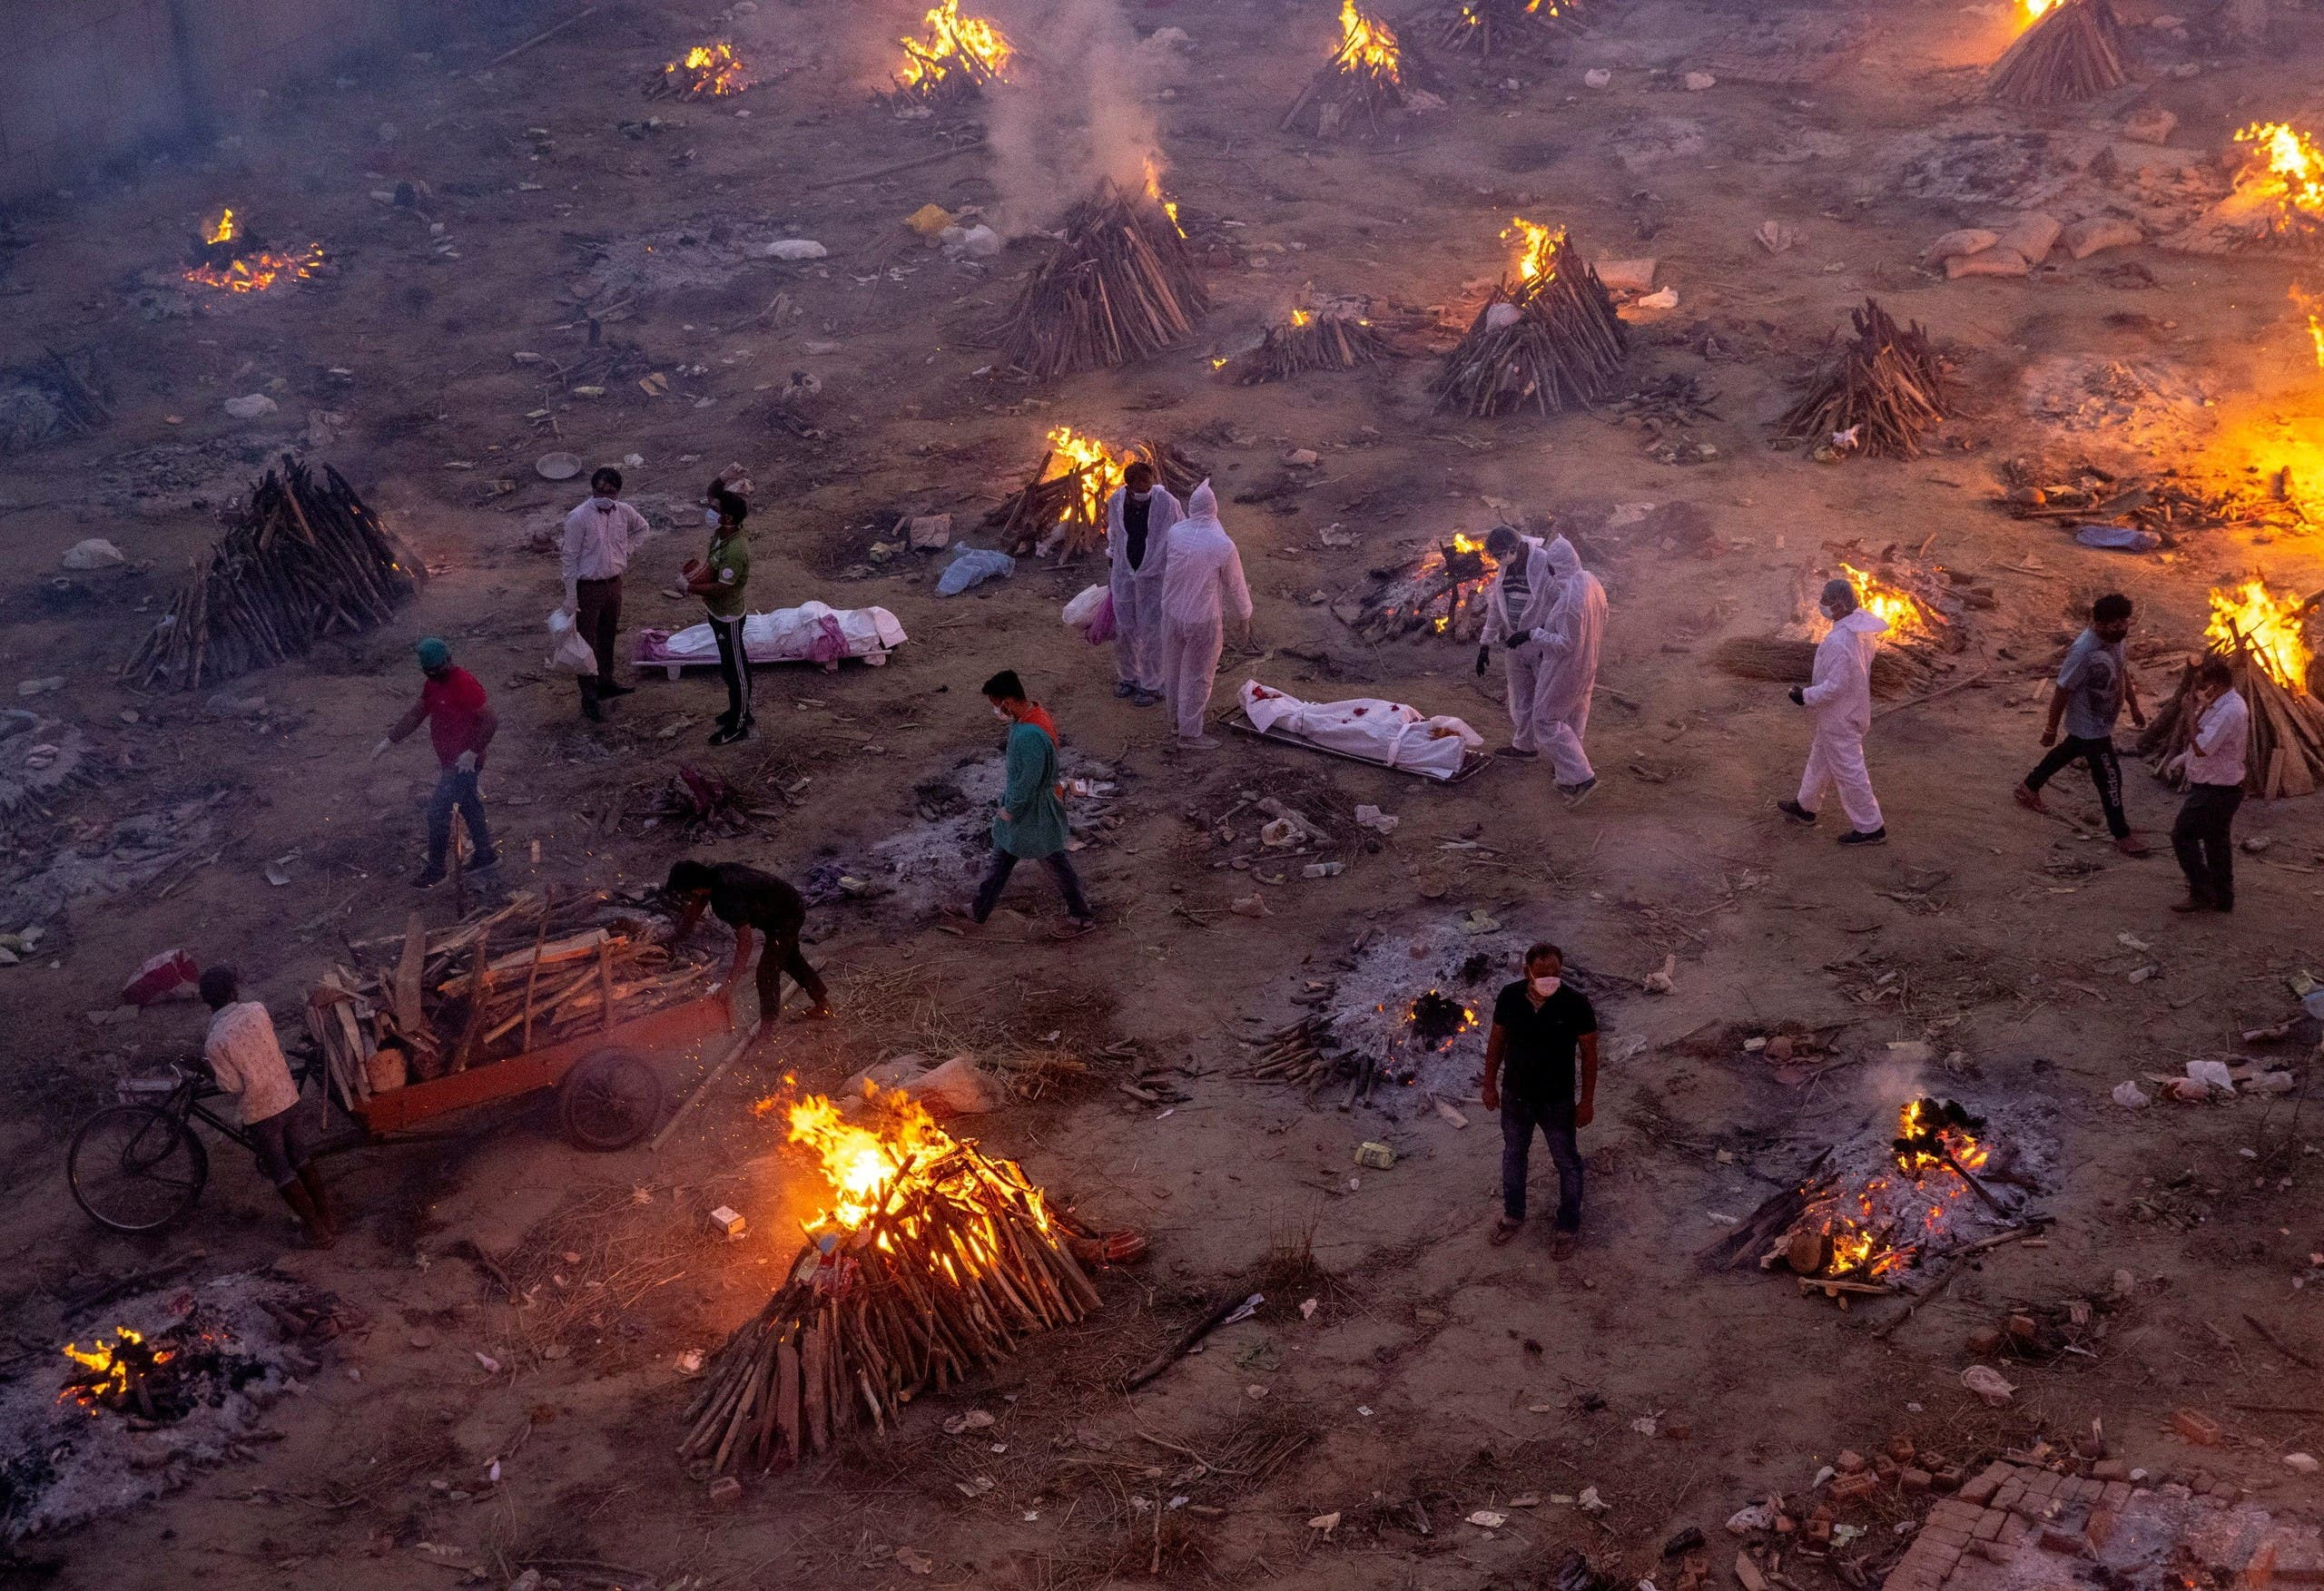 People wait to cremate victims who died due to complications related to the coronavirus disease (COVID-19), at a crematorium ground in New Delhi, India, April 23, 2021. (Reuters)